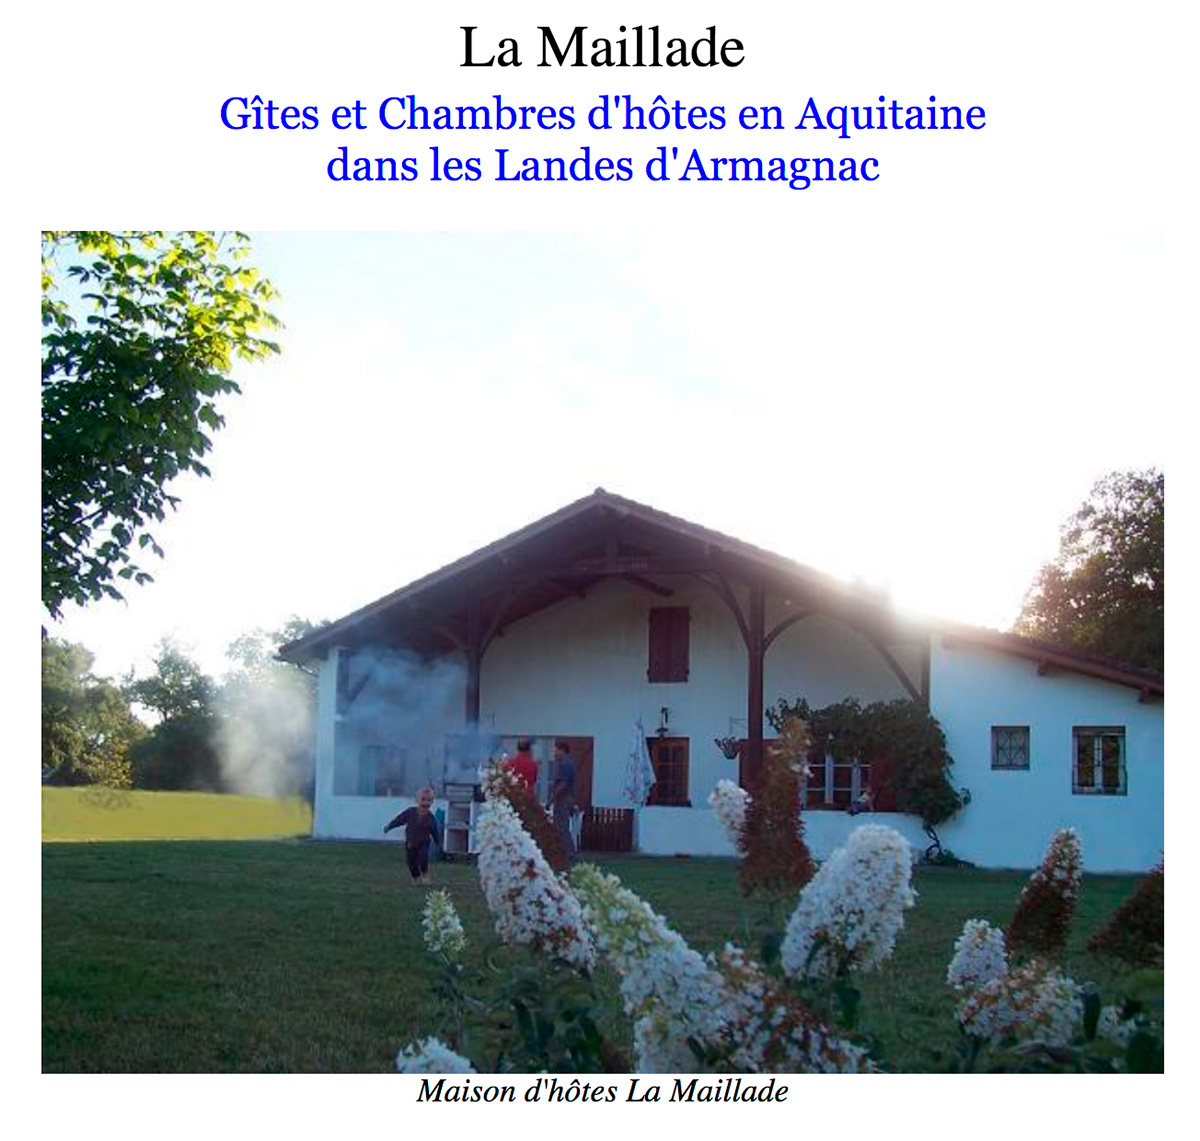 La-Maillade-chambres-dhotes